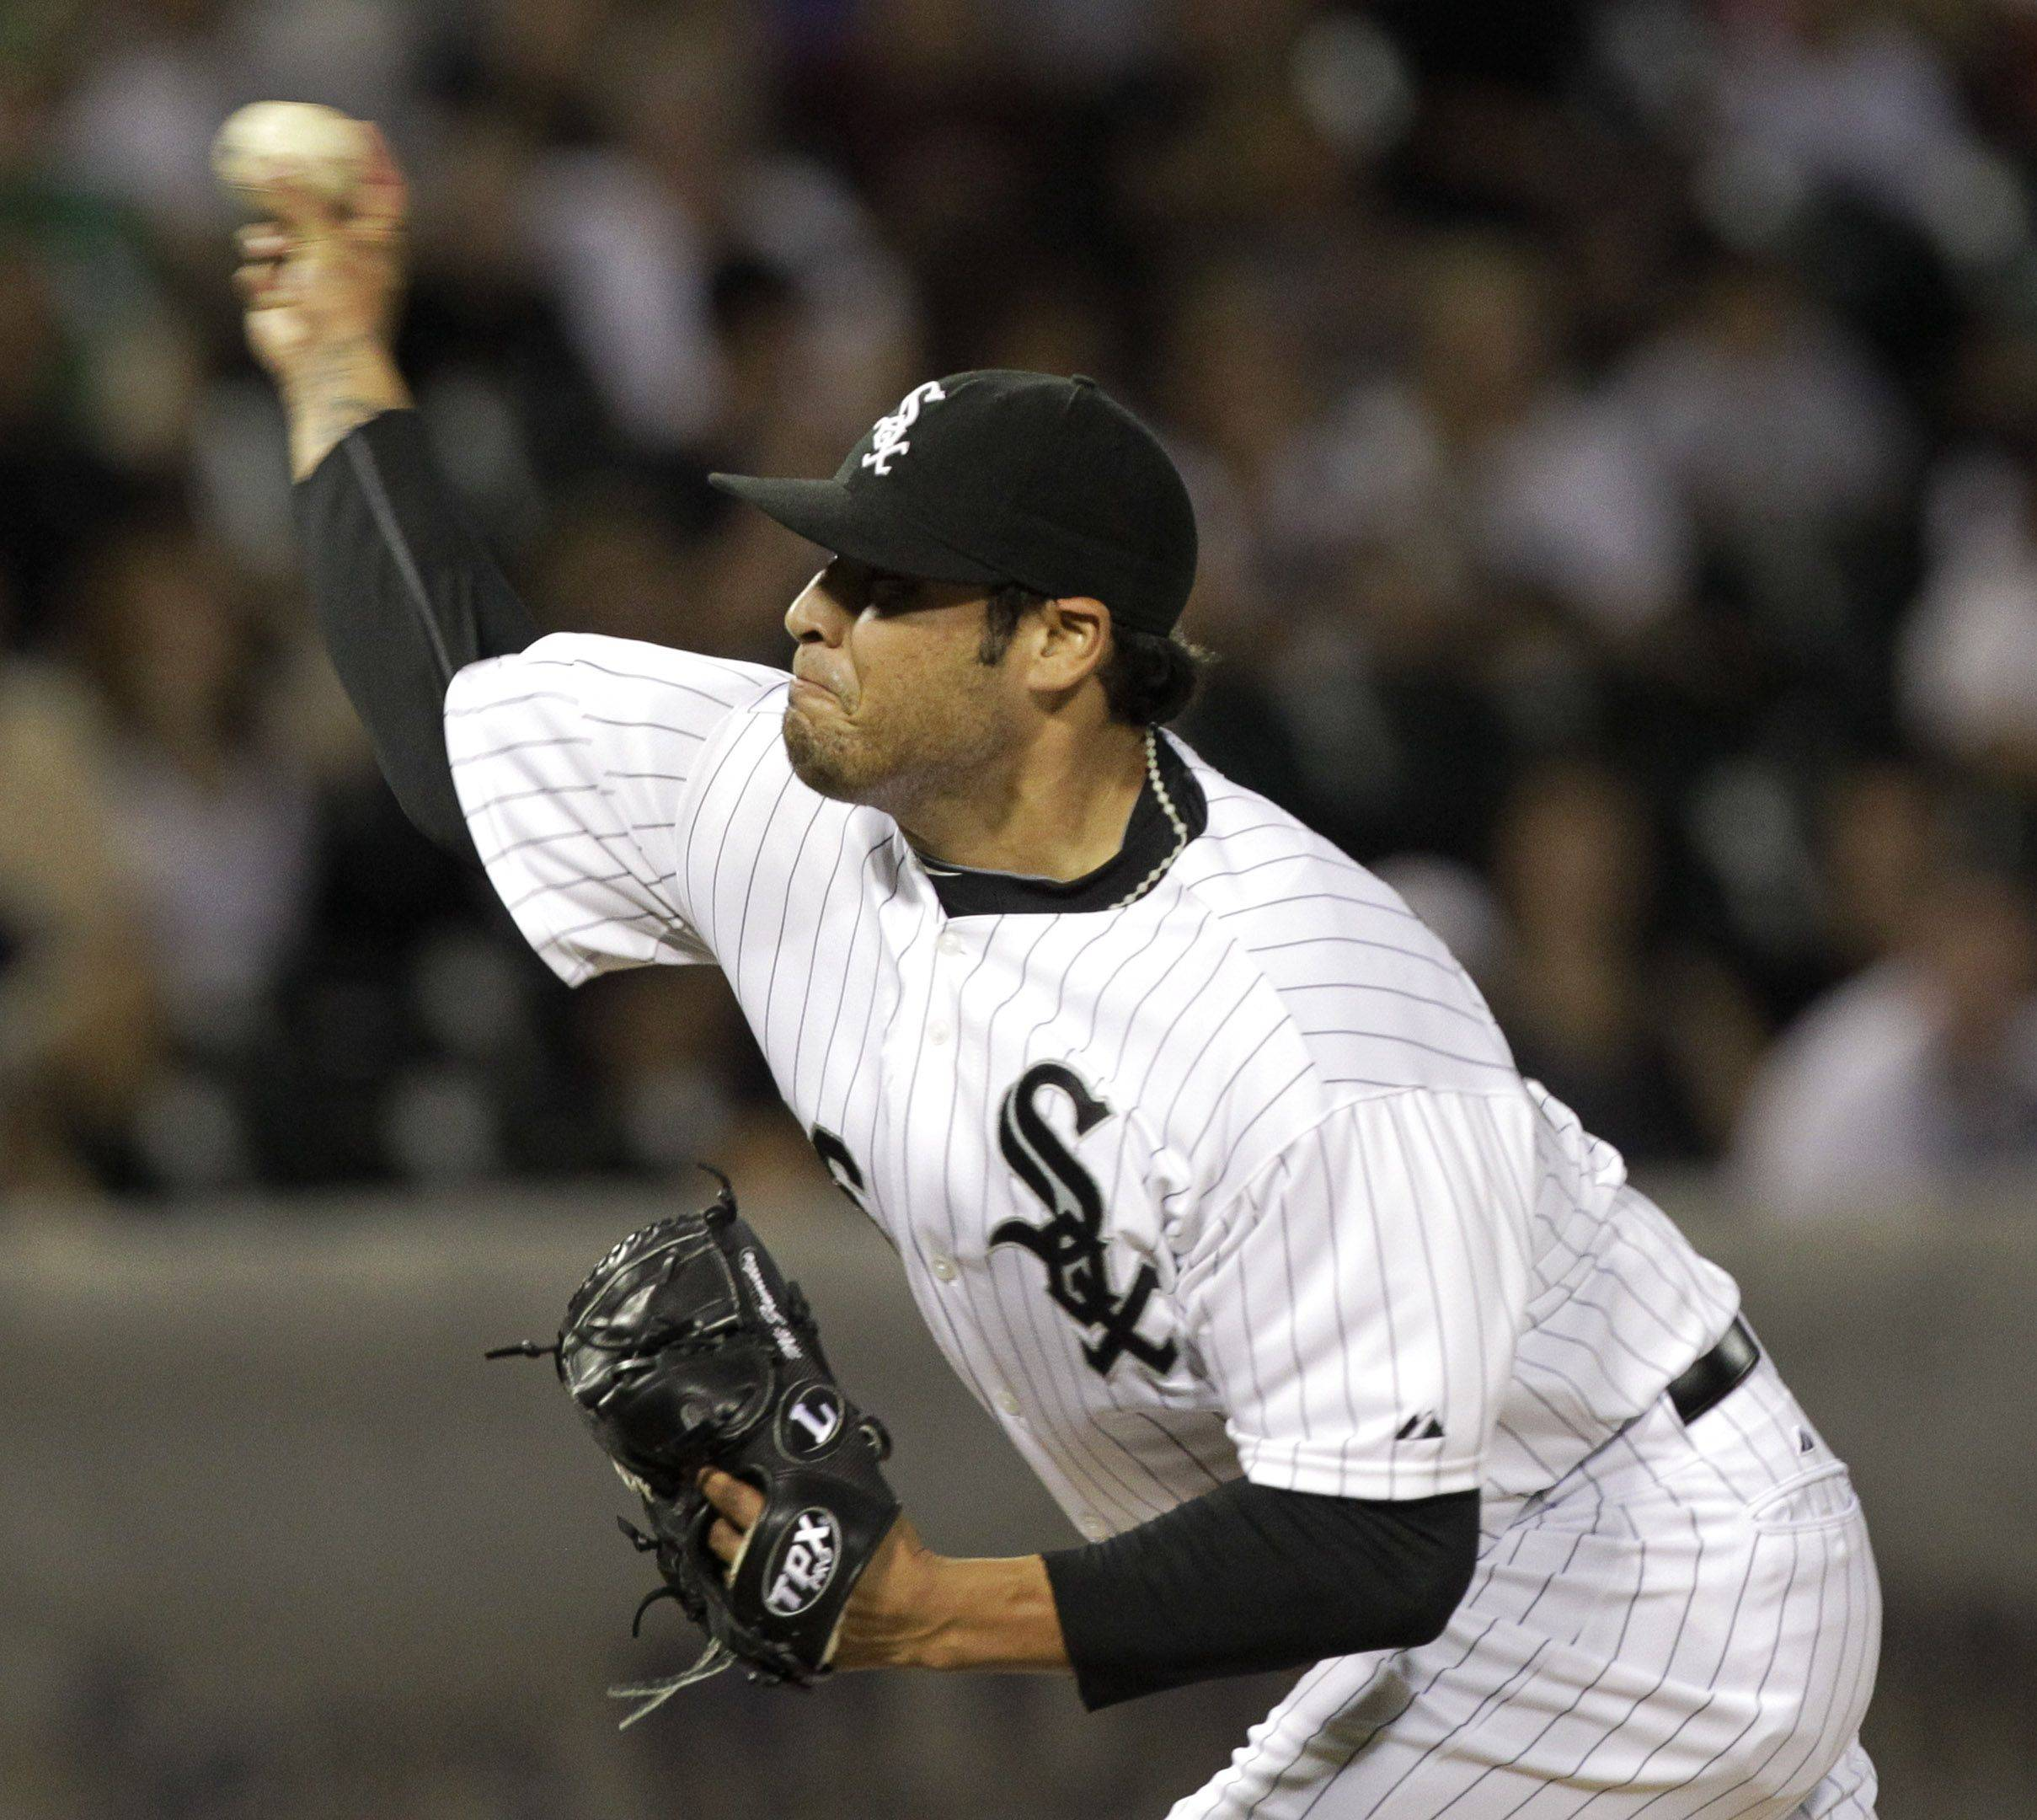 Can White Sox' Santos build on last season's amazing success?